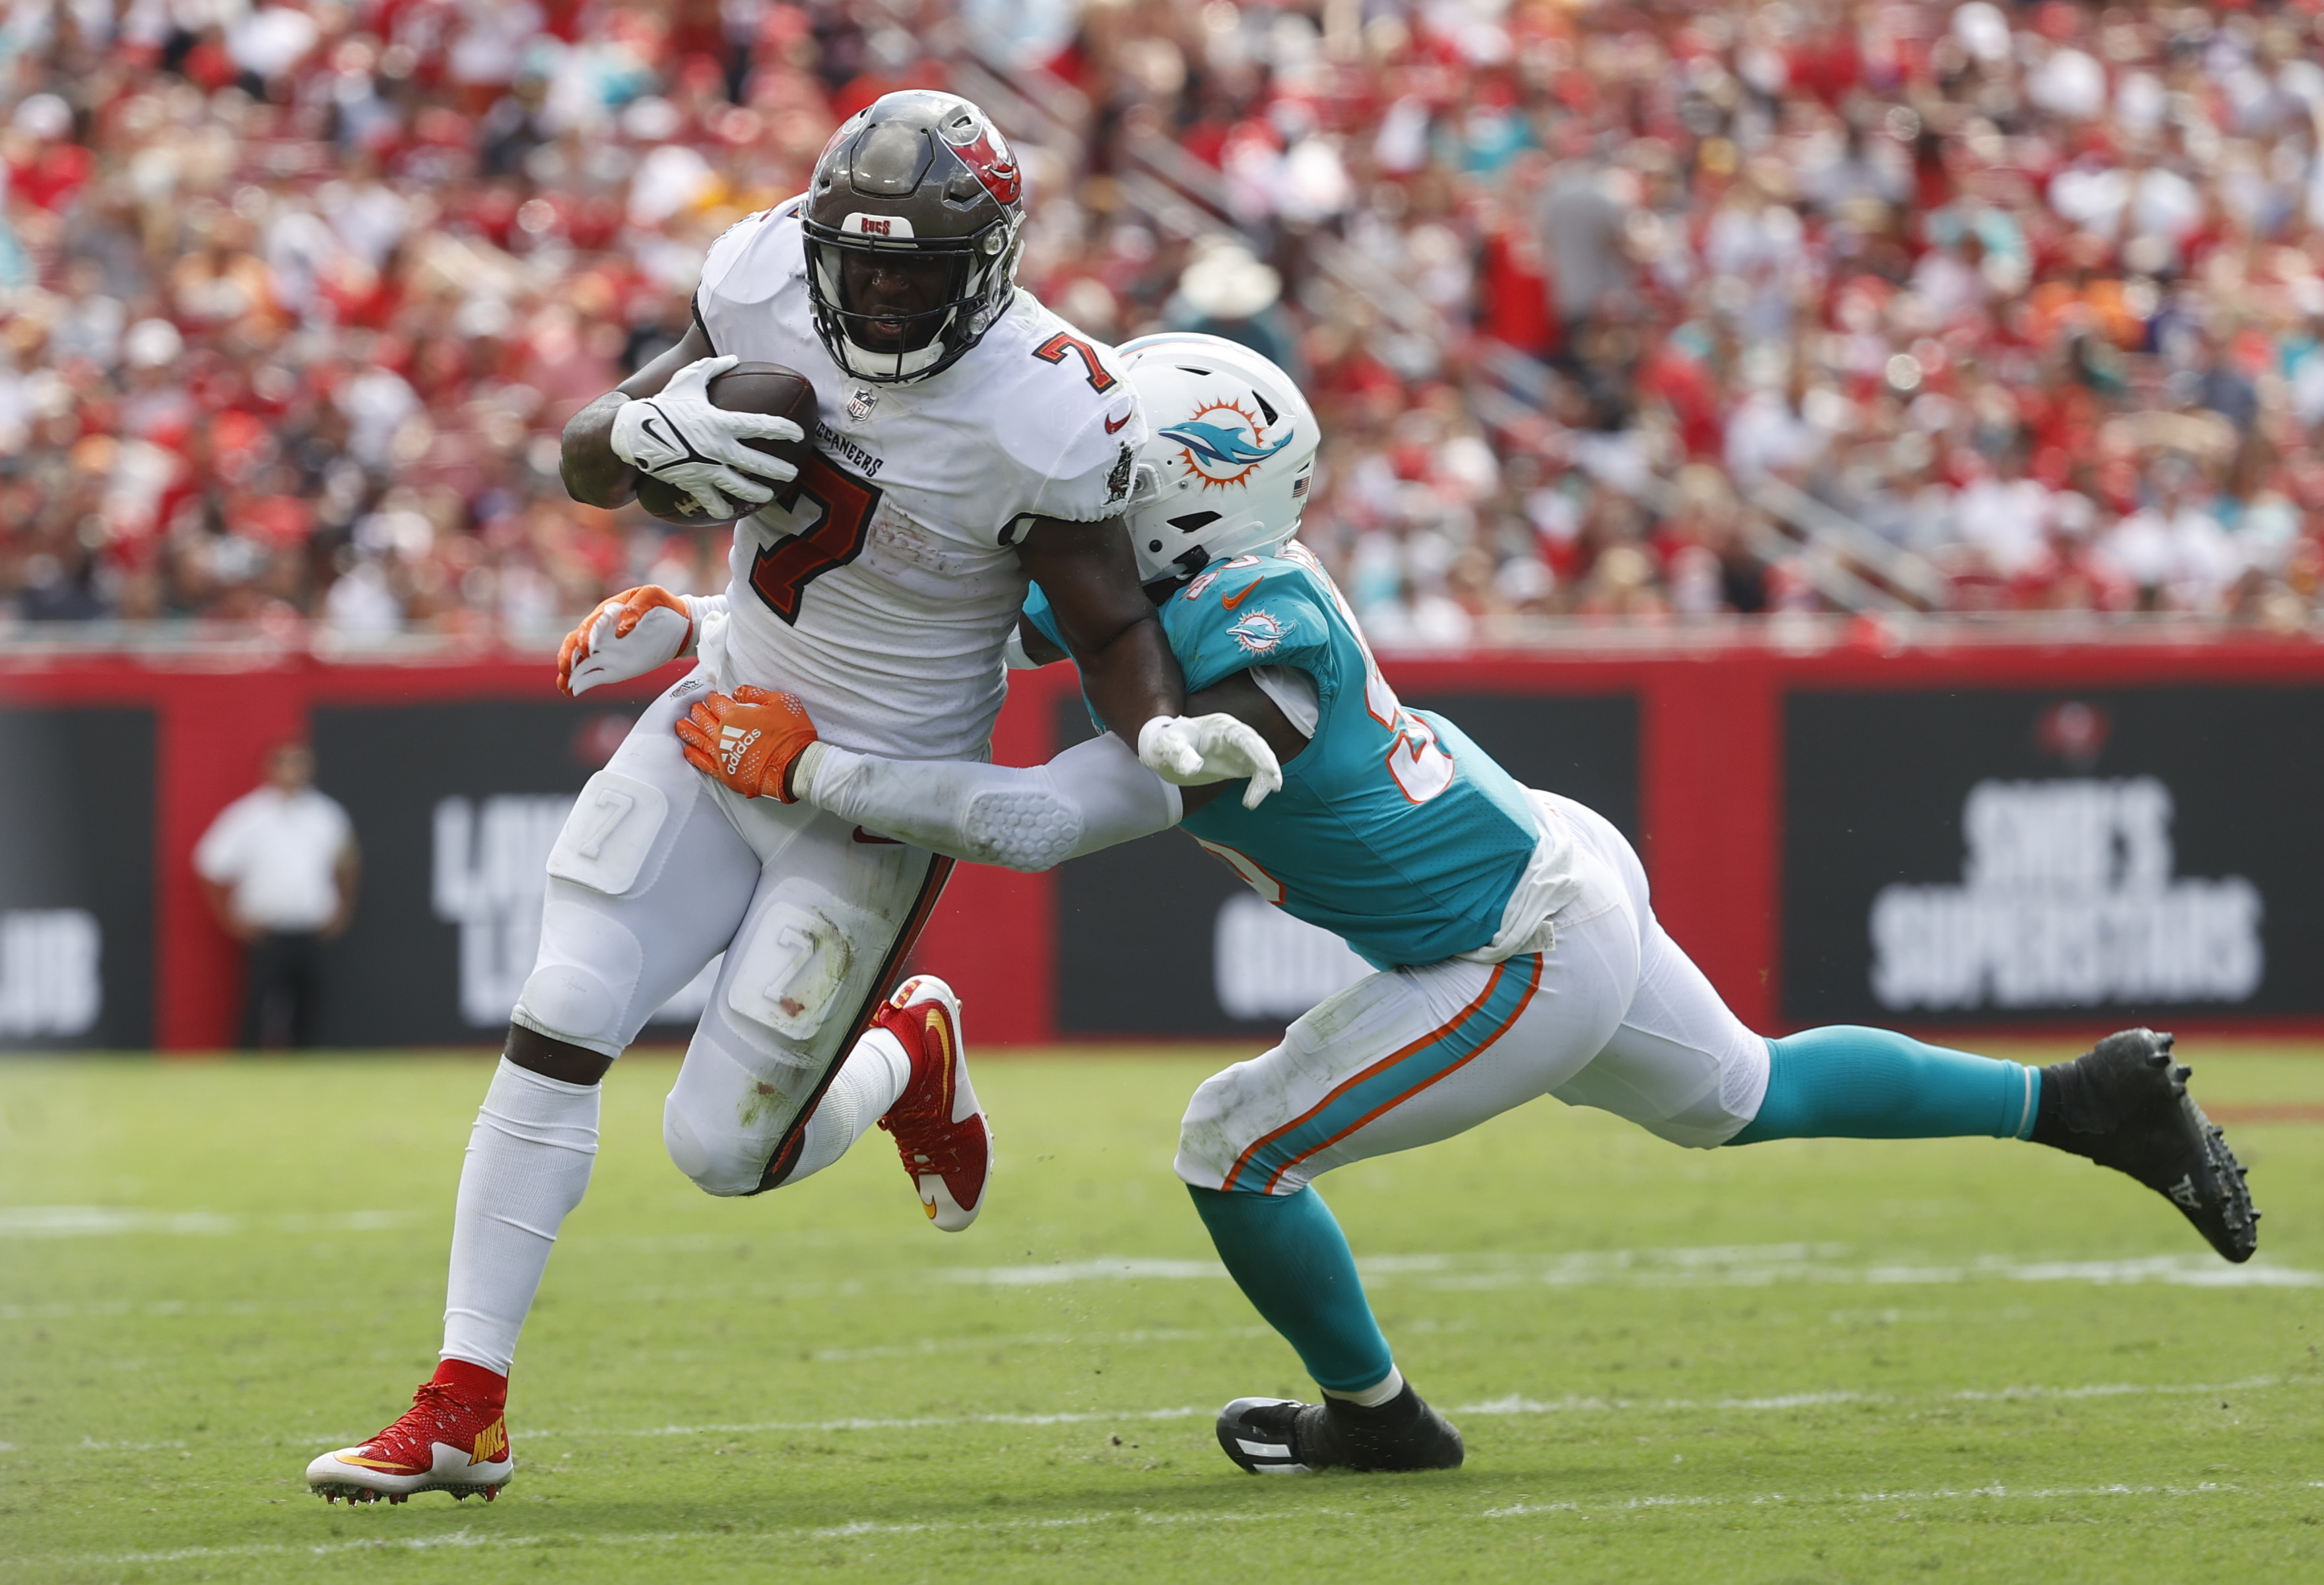 NFL: Miami Dolphins at Tampa Bay Buccaneers